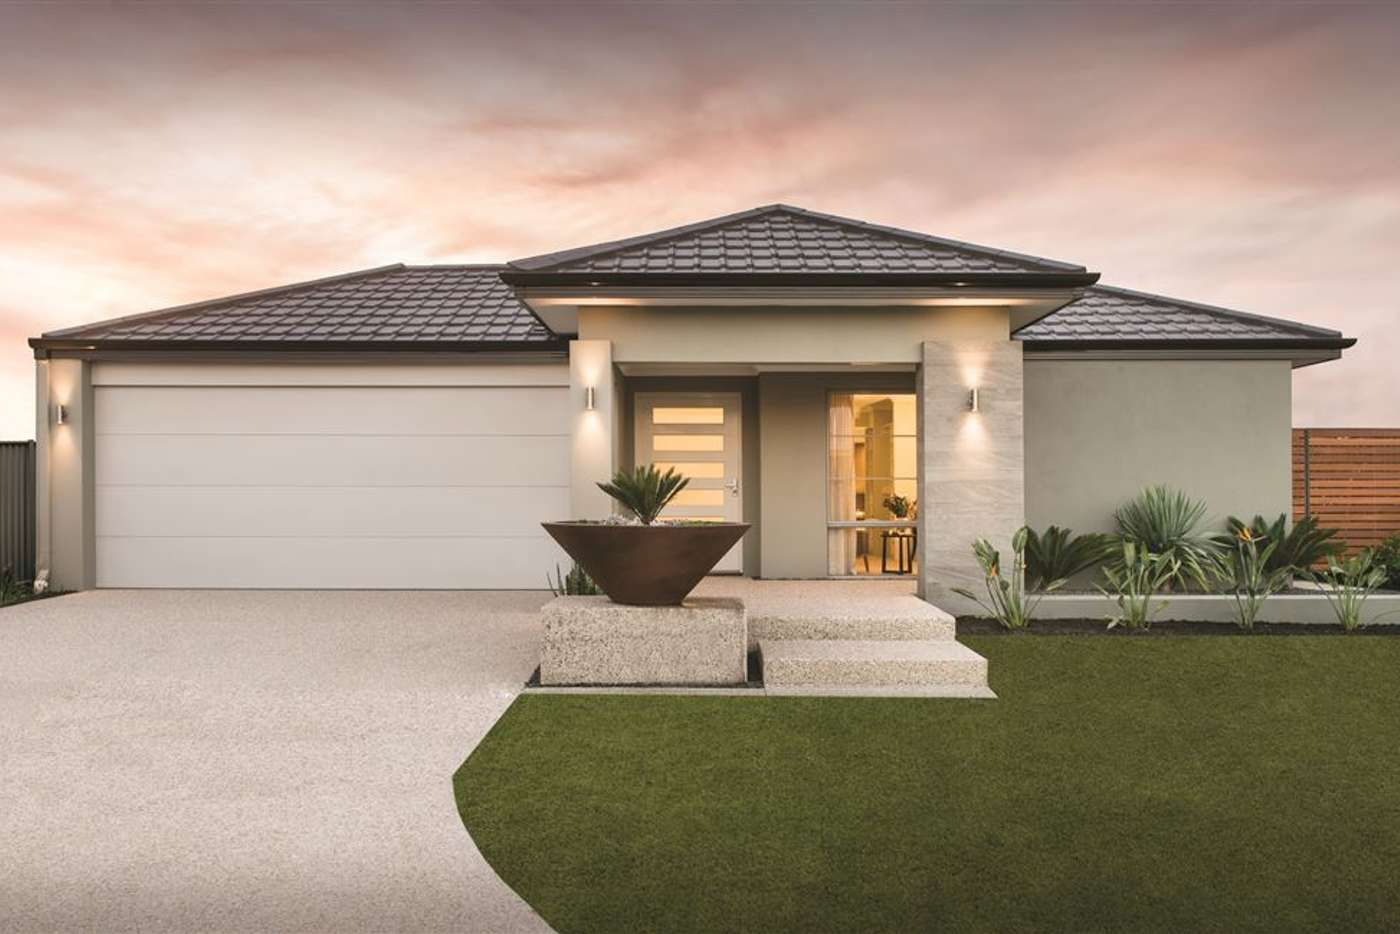 Main view of Homely house listing, 5 Wattleseed Avenue, Banjup WA 6164